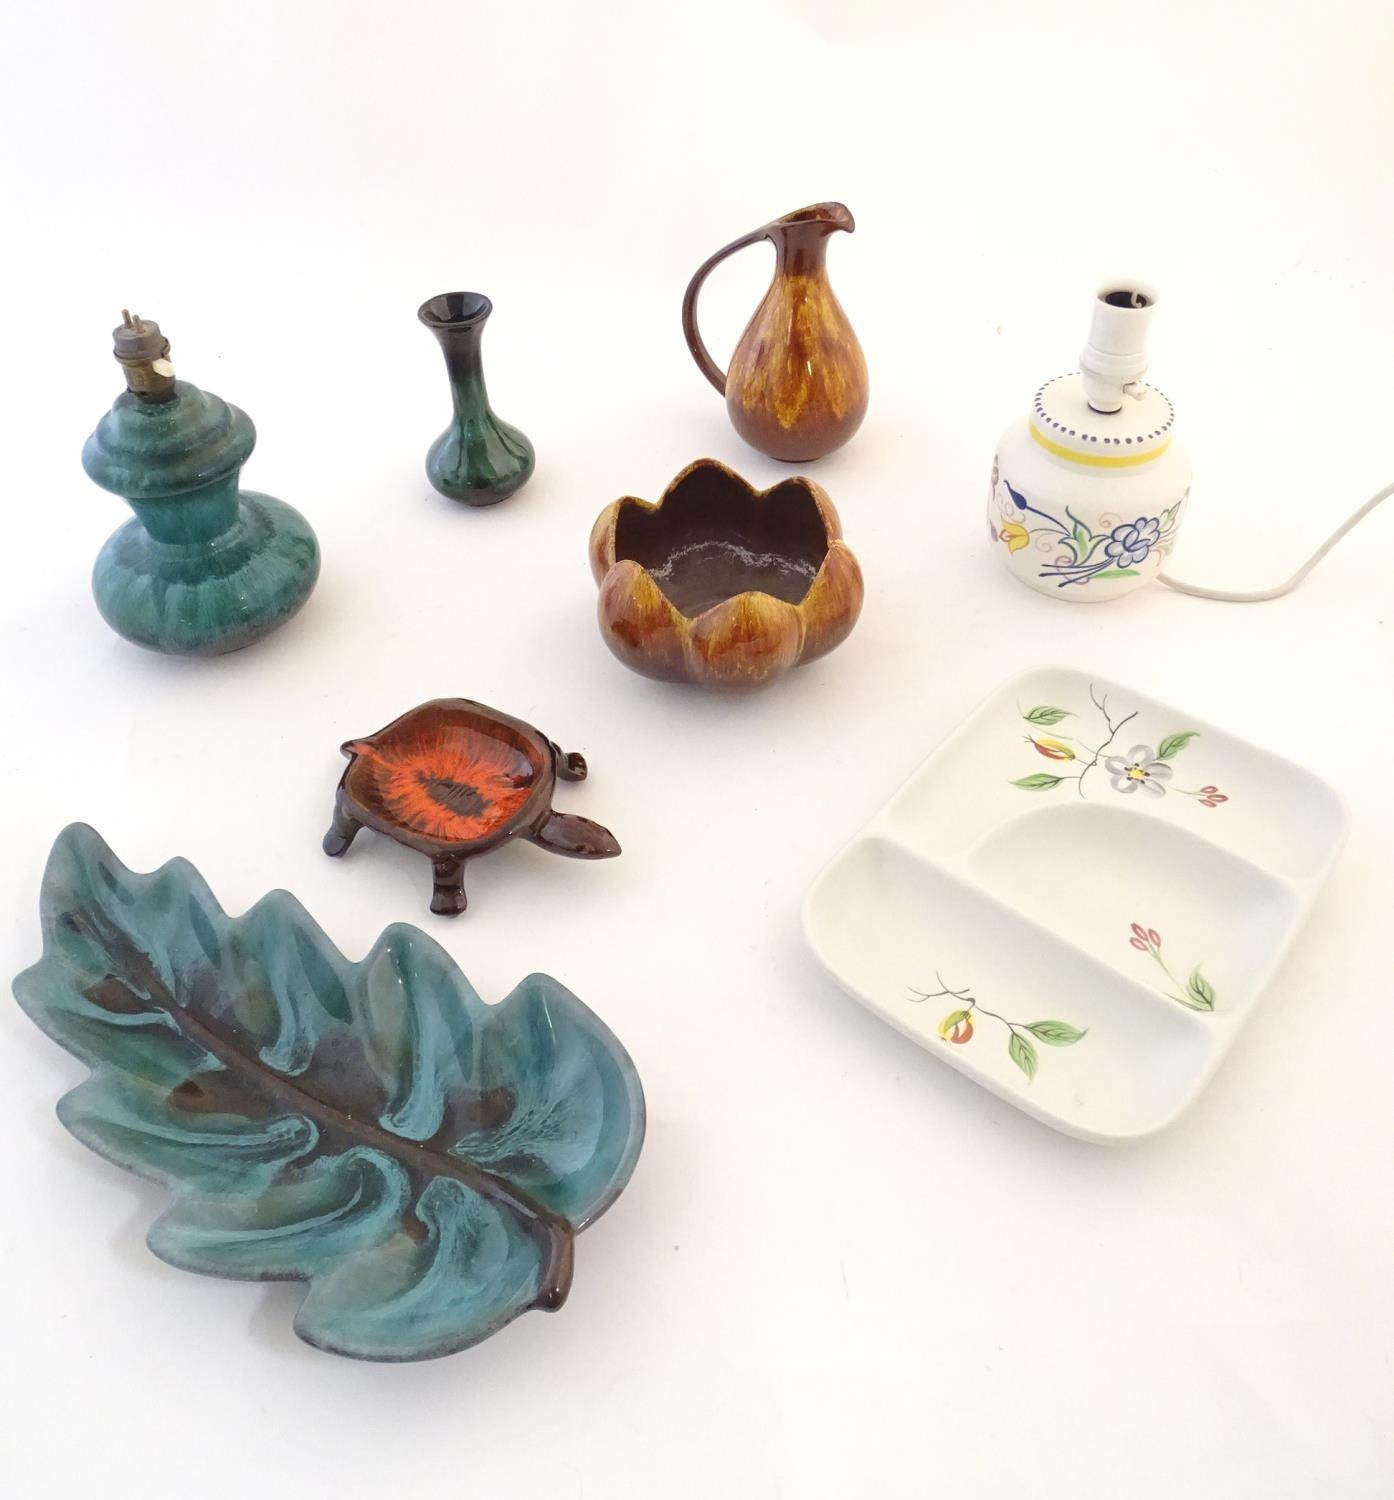 A quantity of vintage Canadian Blue Mountain Pottery wares comprising a lotus shaped bowl, a ewer, a - Image 4 of 20